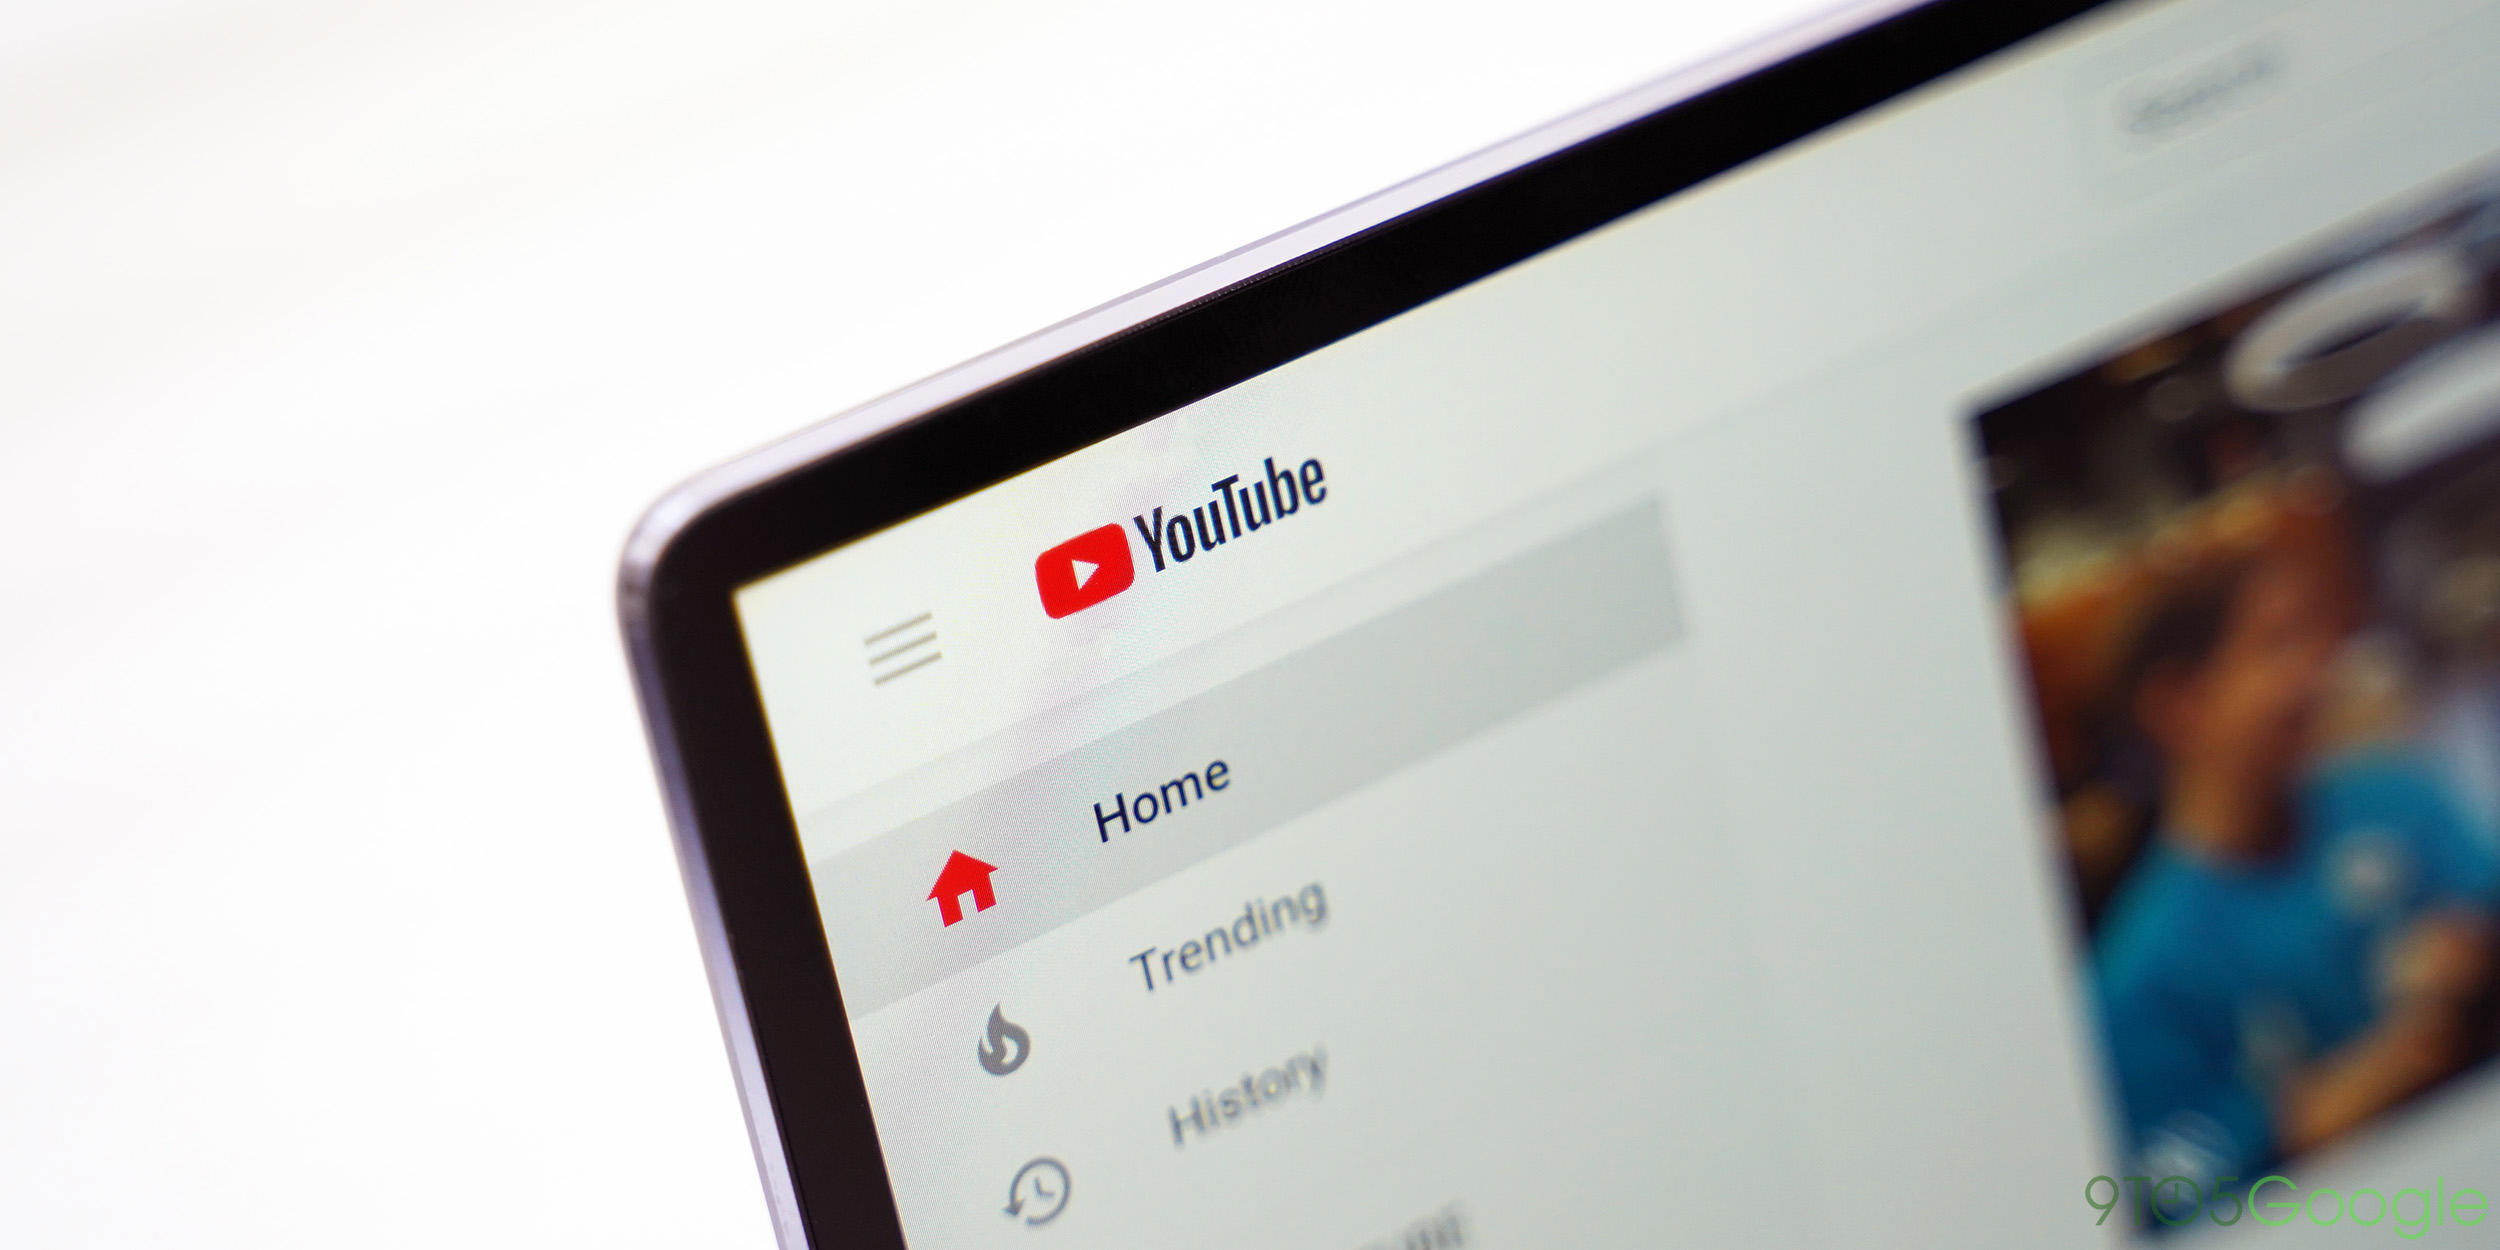 YouTube revises strike system w/ initial warning, consistent strikes, better explanations